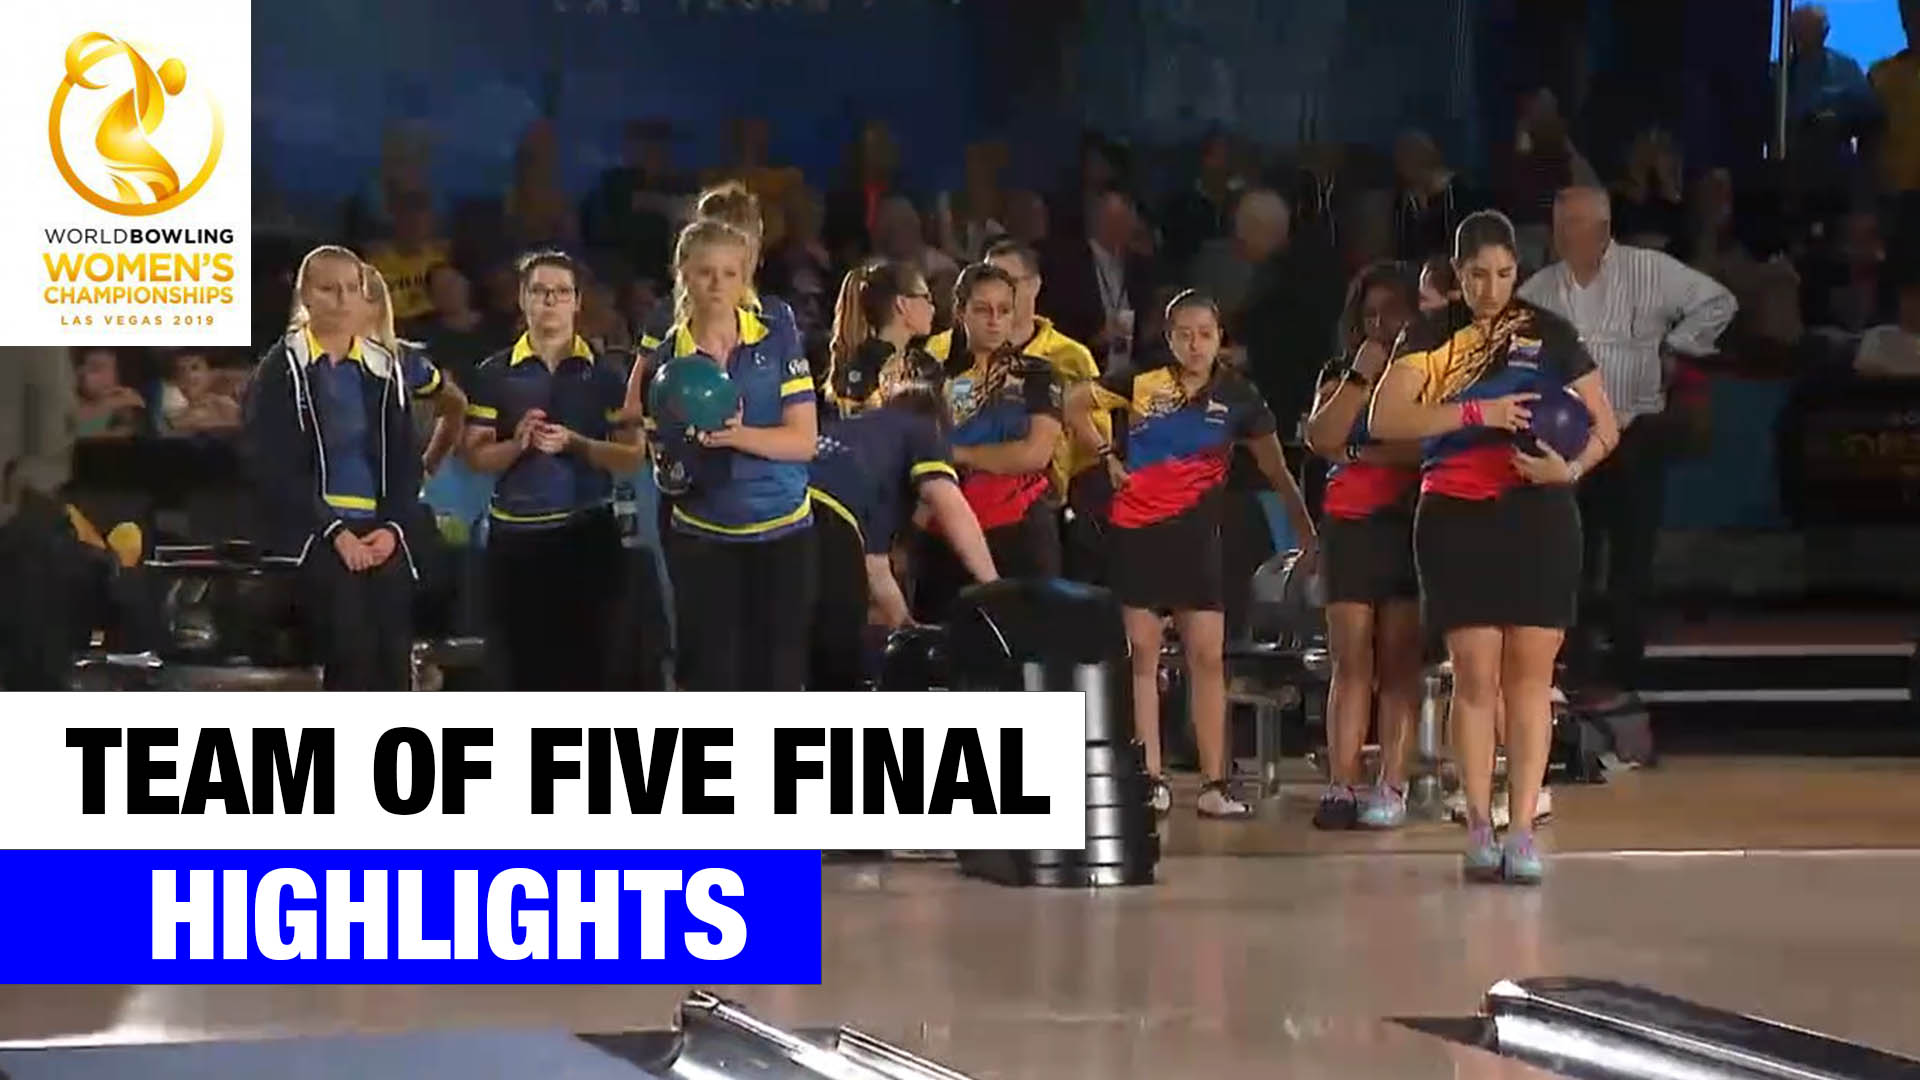 Team of Five Final Highlights – World Bowling Women's Championships 2019